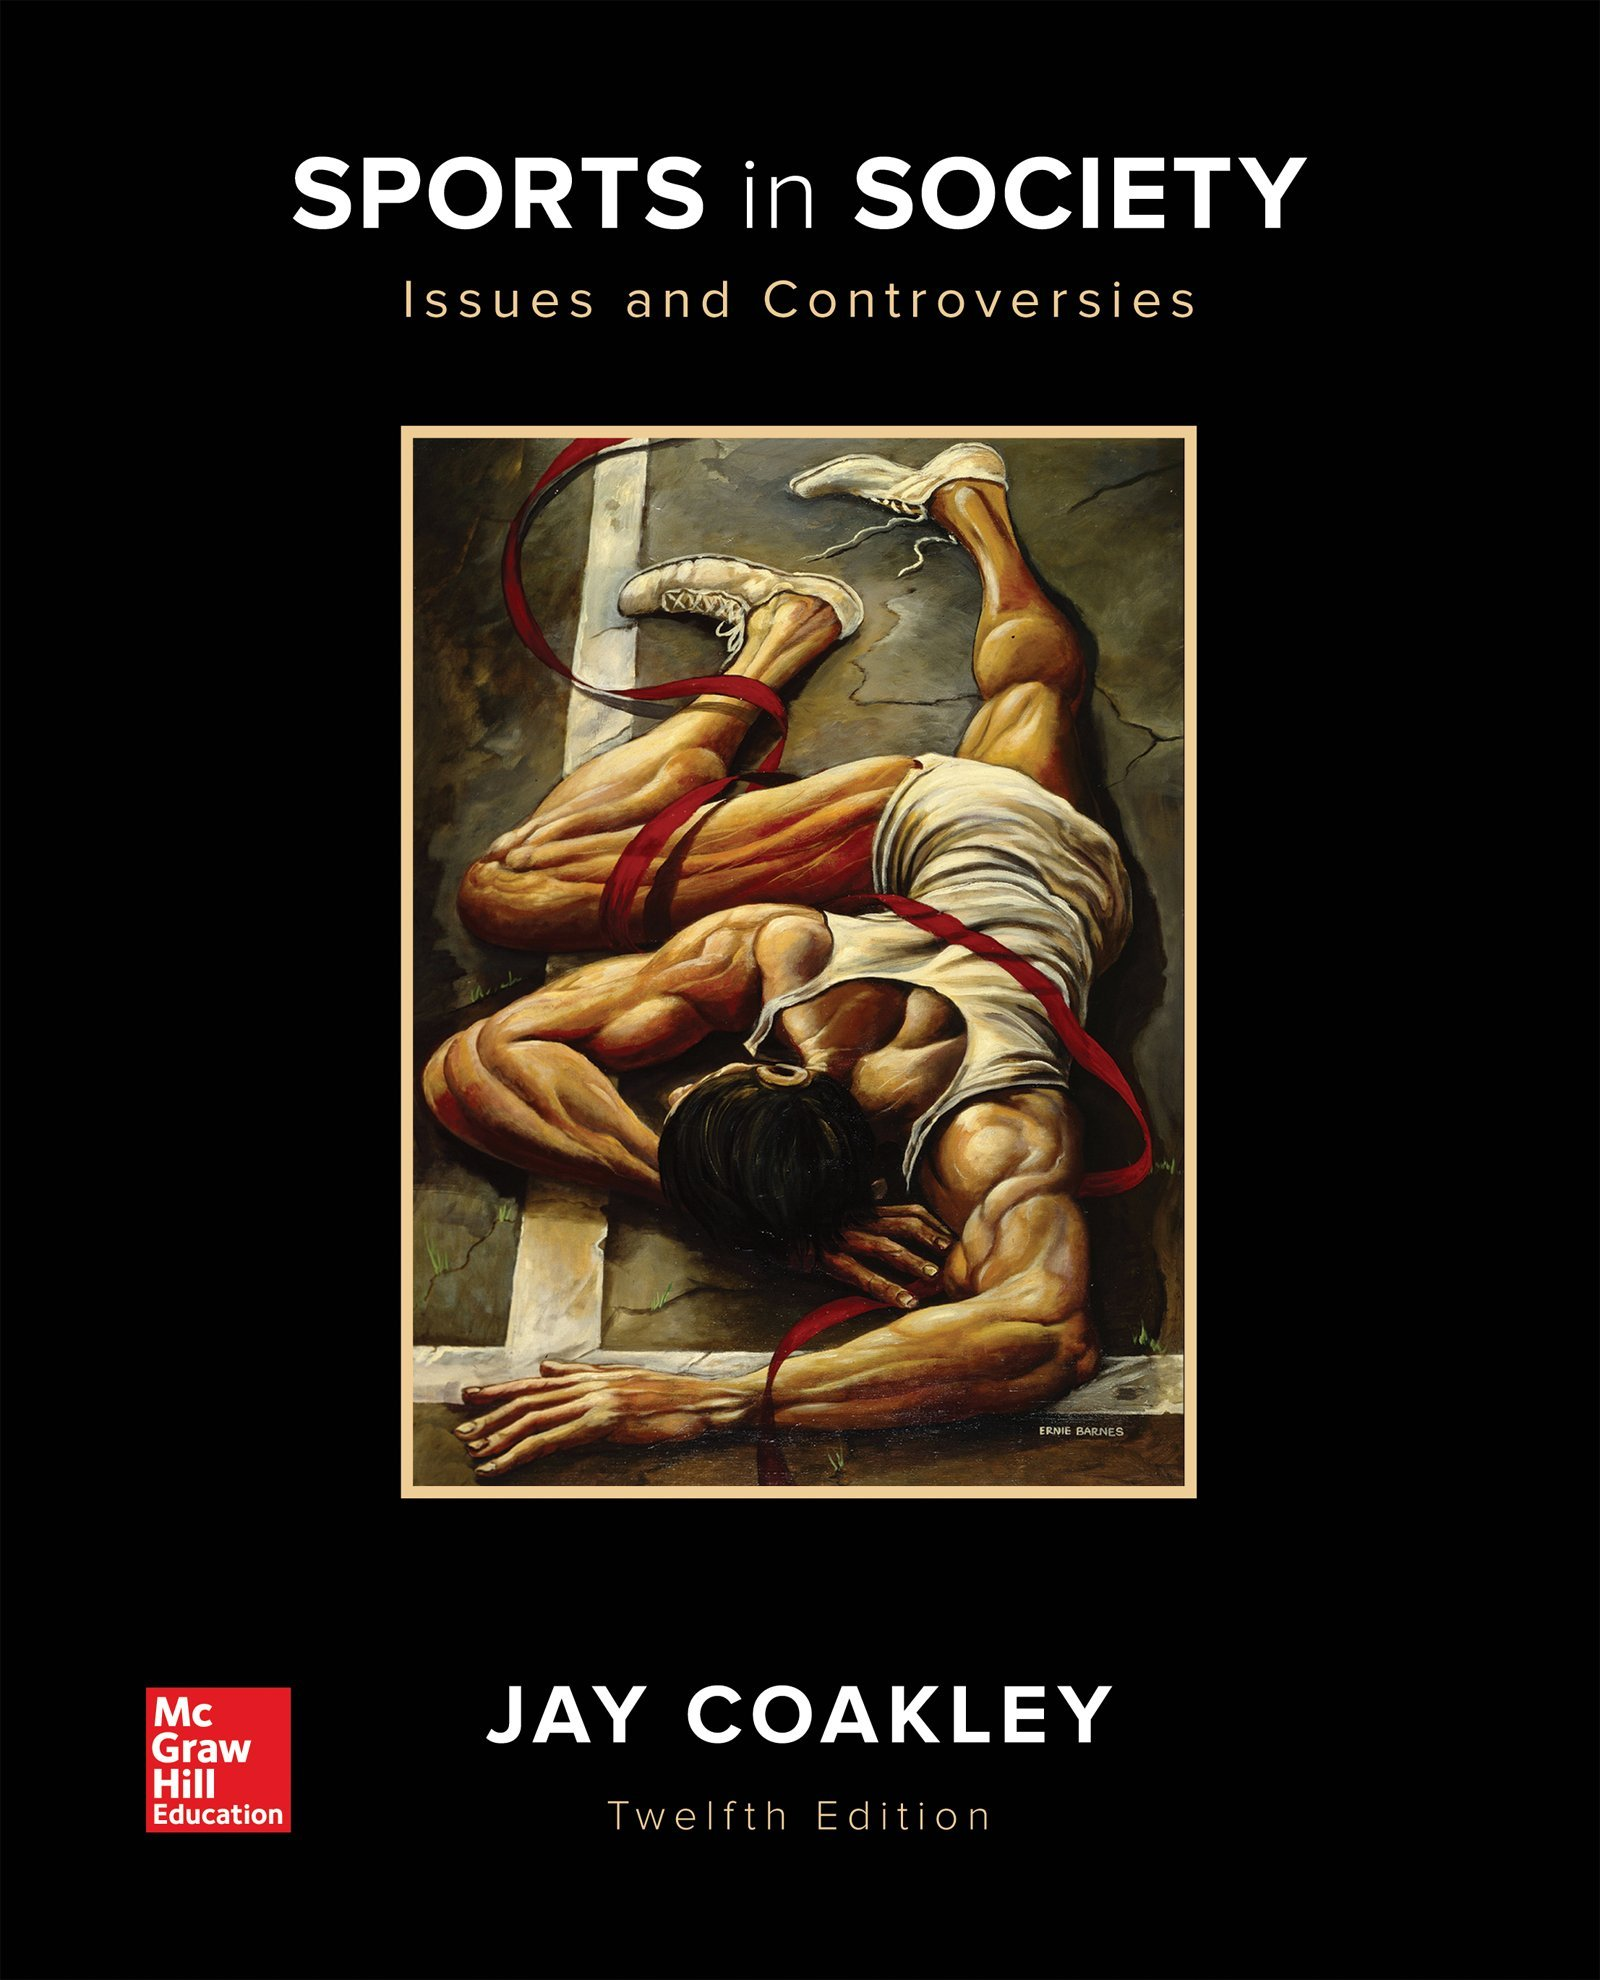 Sports in Society: Issues and Controversies by McGraw-Hill Education